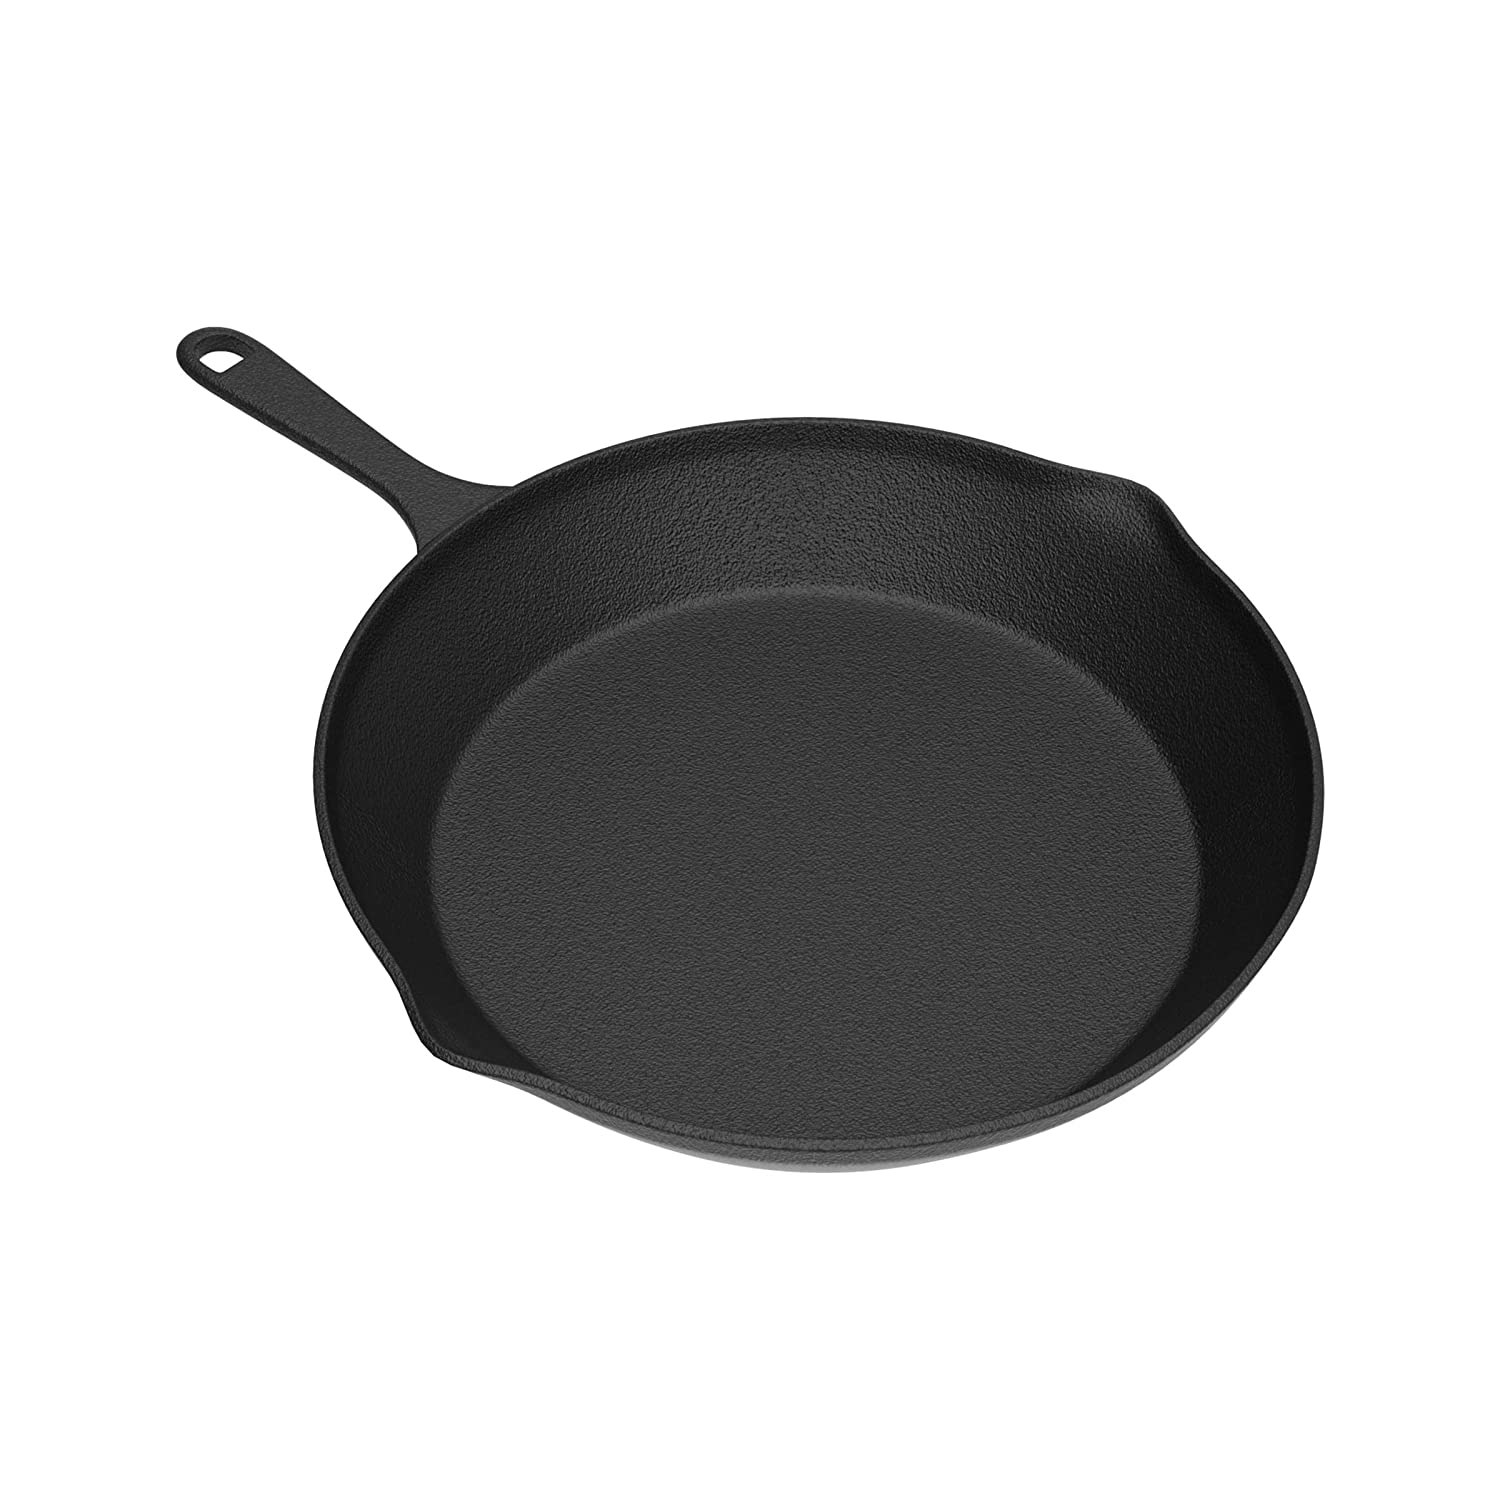 """Home-Complete HC-50036 Frying Pan-Cast Iron Pre-Seasoned Nonstick 6/"""" Skillet-Cook Eggs Meat Omelets Black Mini Pizza and More-Kitchen or Camping Cookware 6"""